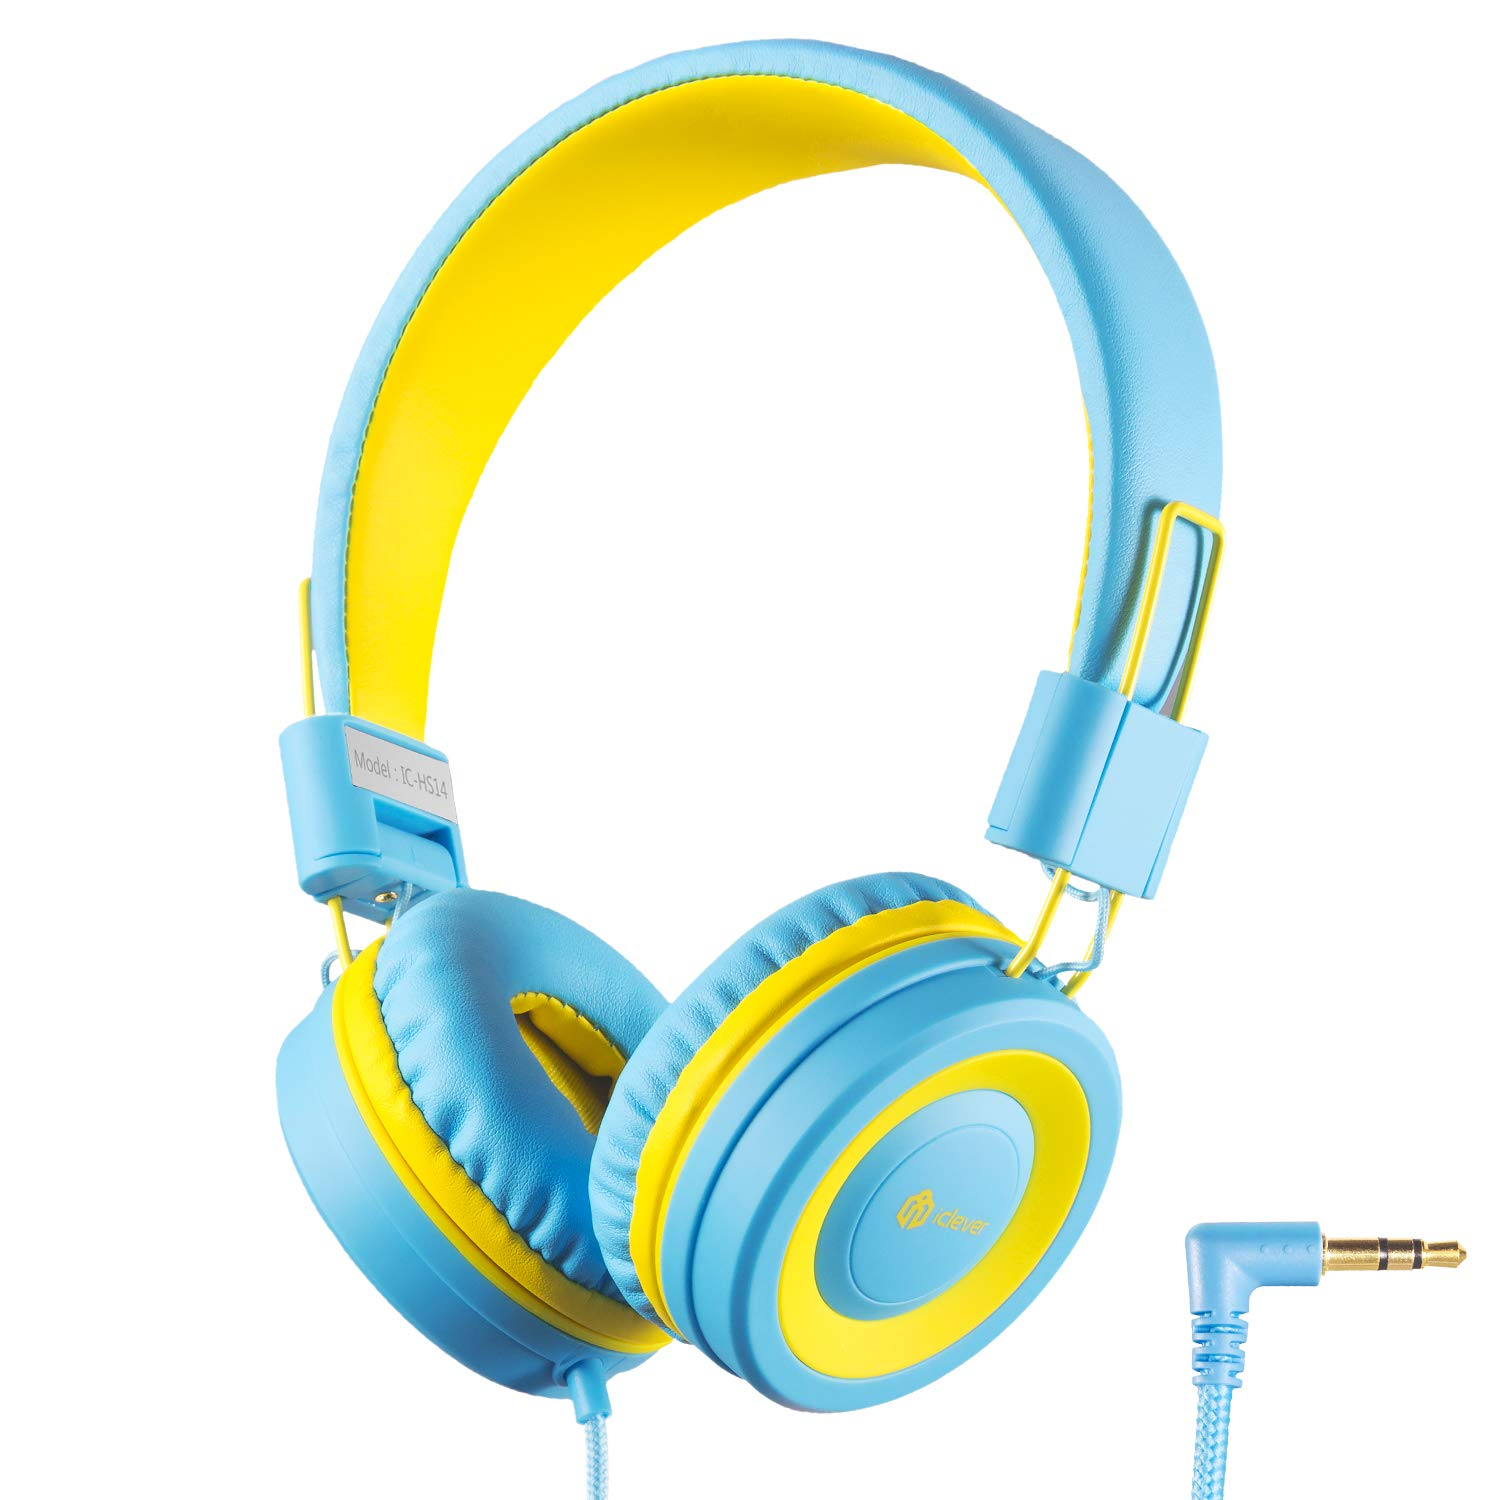 iClever Kids Headphones Girls - Wired Headphones for Kids, Adjustable Headband, Stereo Sound, Foldable, Untangled Wires, 3.5mm Aux Jack, 94dB Volume Limited - Childrens Headphones on Ear, Blue/Yellow